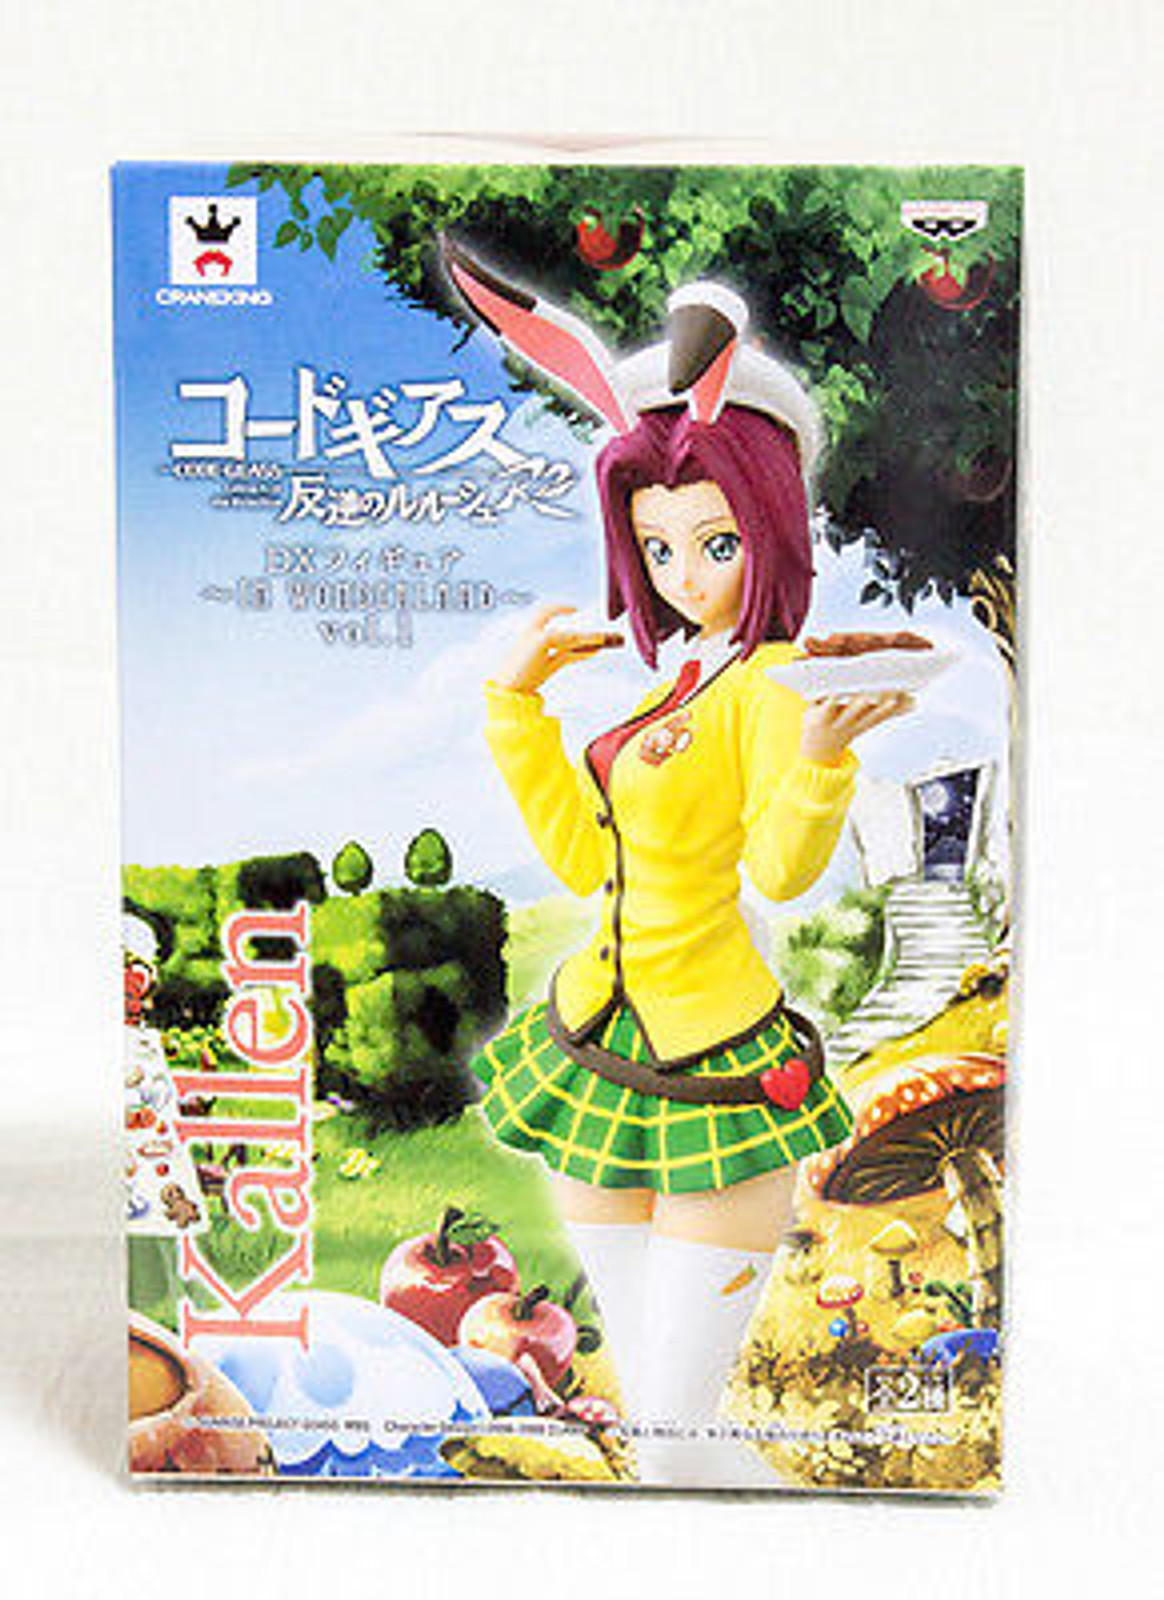 Code Geass R2 Kallen DX Figure In Wonderland vol.1 Banpresto JAPAN